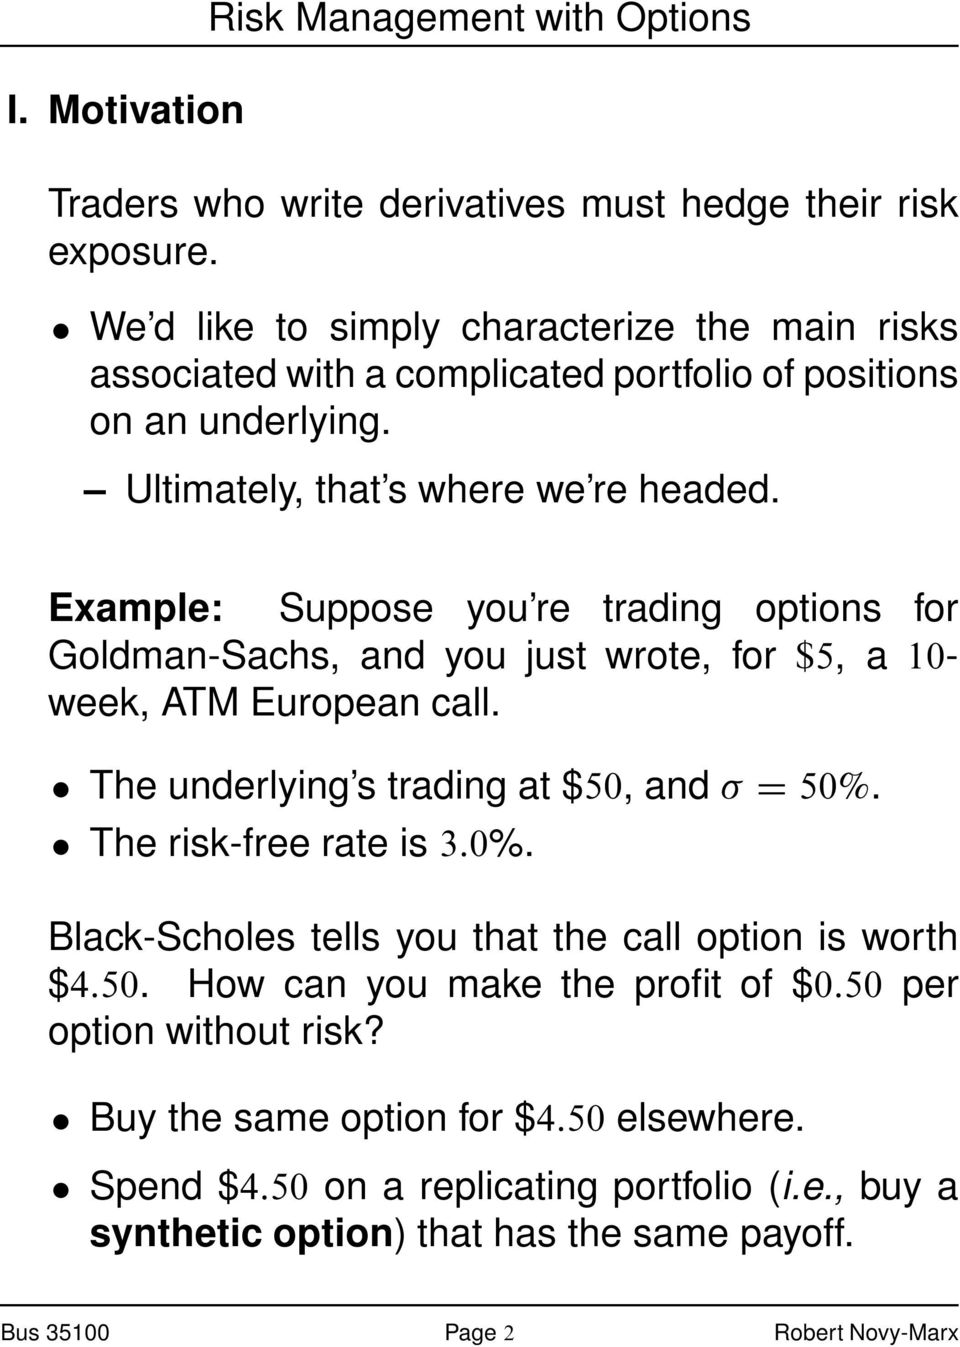 Example: Suppose you re trading options for Goldman-Sachs, and you just wrote, for $5, a 10- week, ATM European call. The underlying s trading at $50, and D 50%. The risk-free rate is 3.